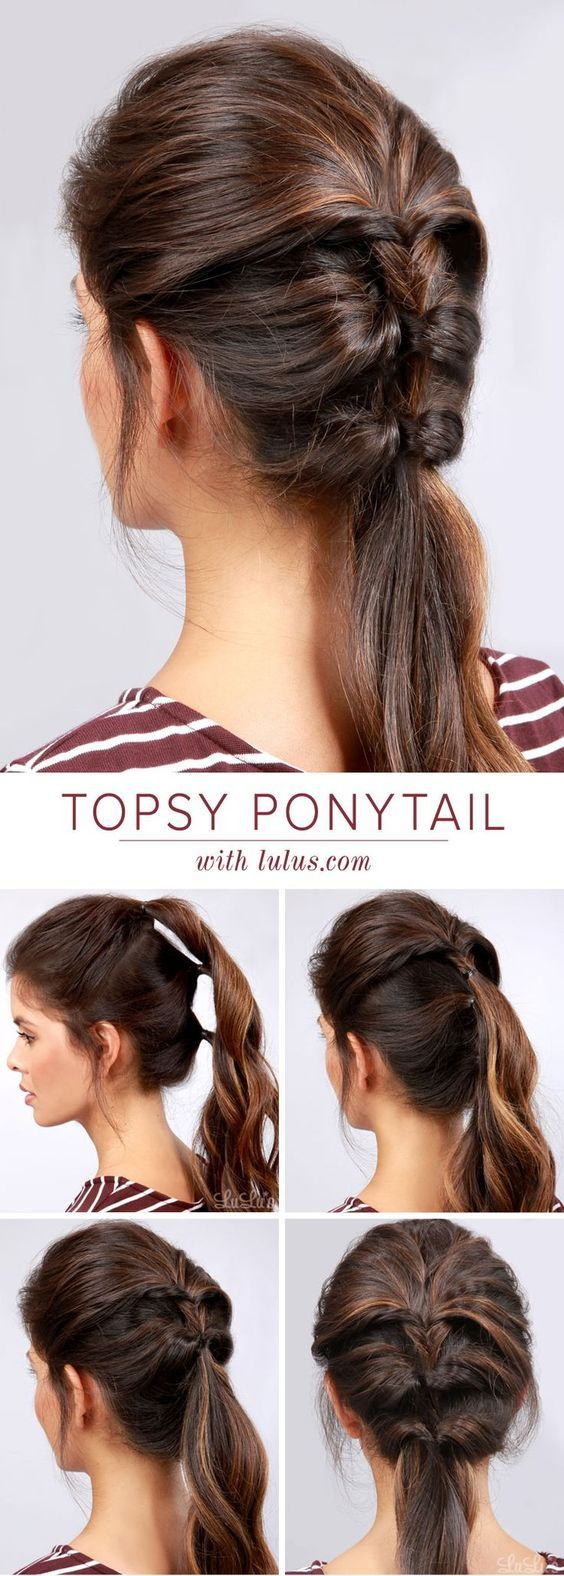 BEAUTY–LuLu*s How-To: Topsy Ponytail Hair Tutorial